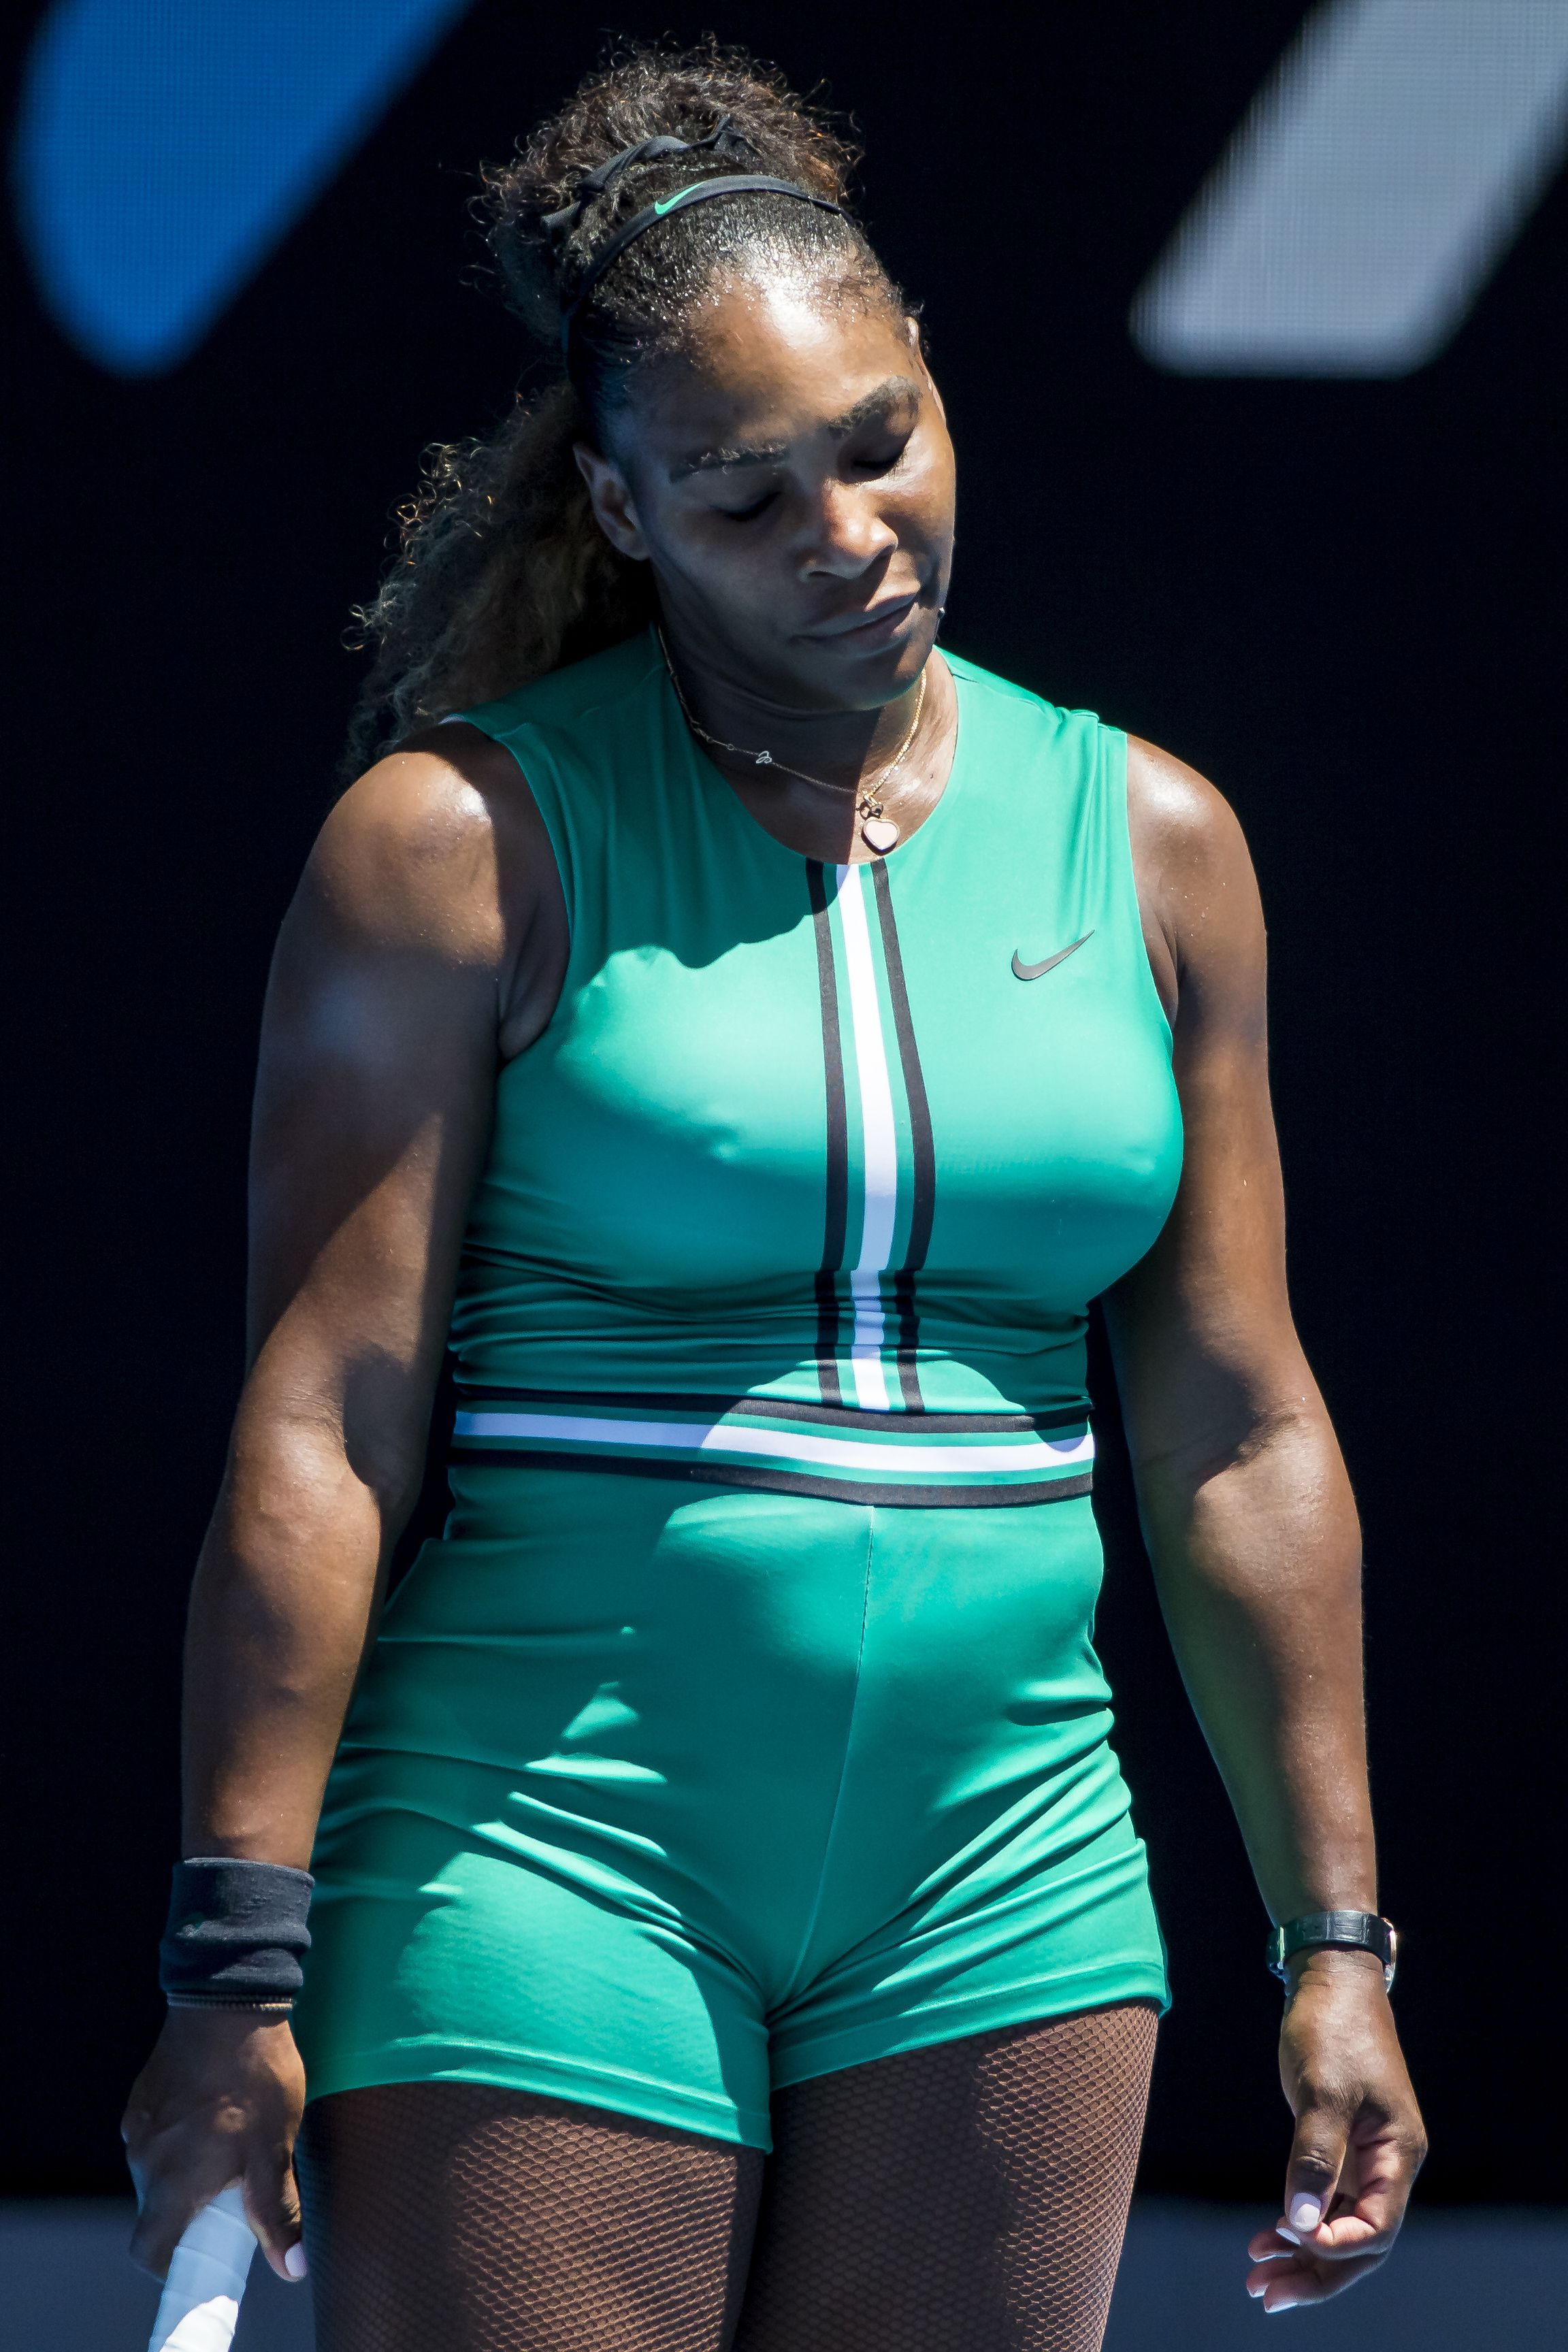 Serena Williams shows her frustration during her match